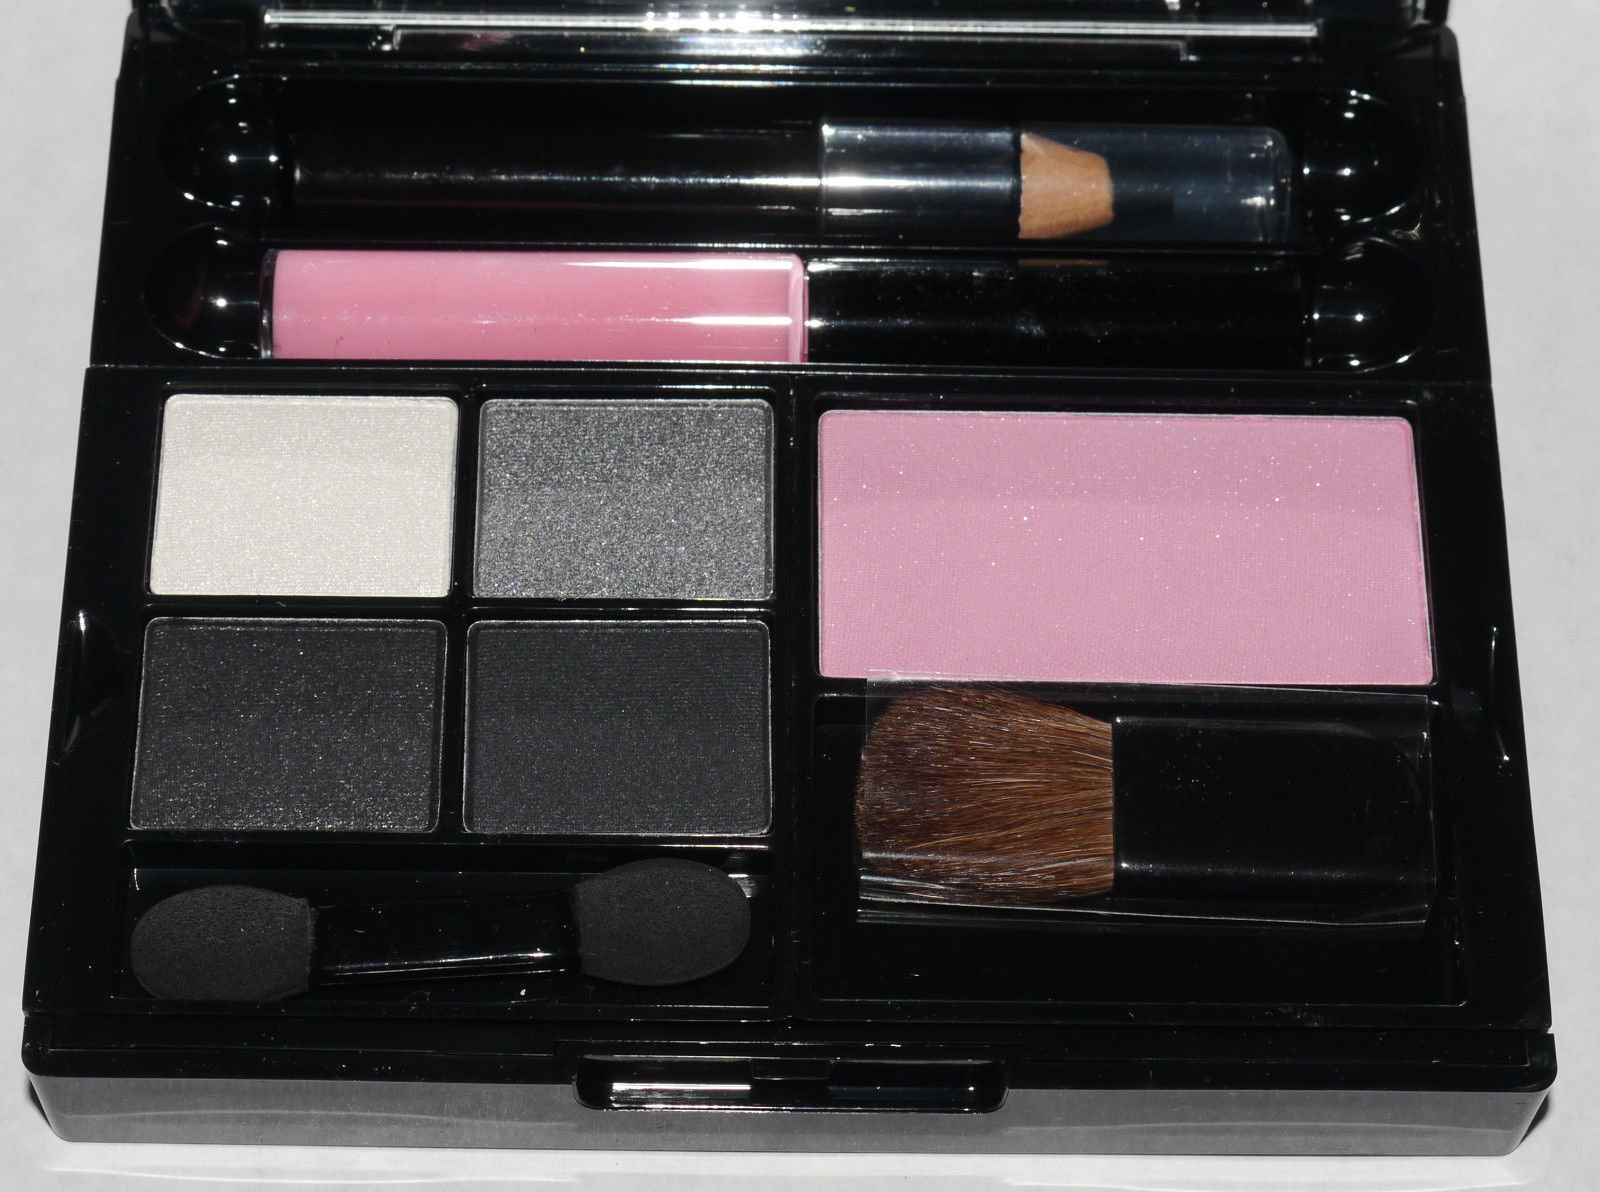 Maybelline New York Up In Smoke Makeup Palette Kit